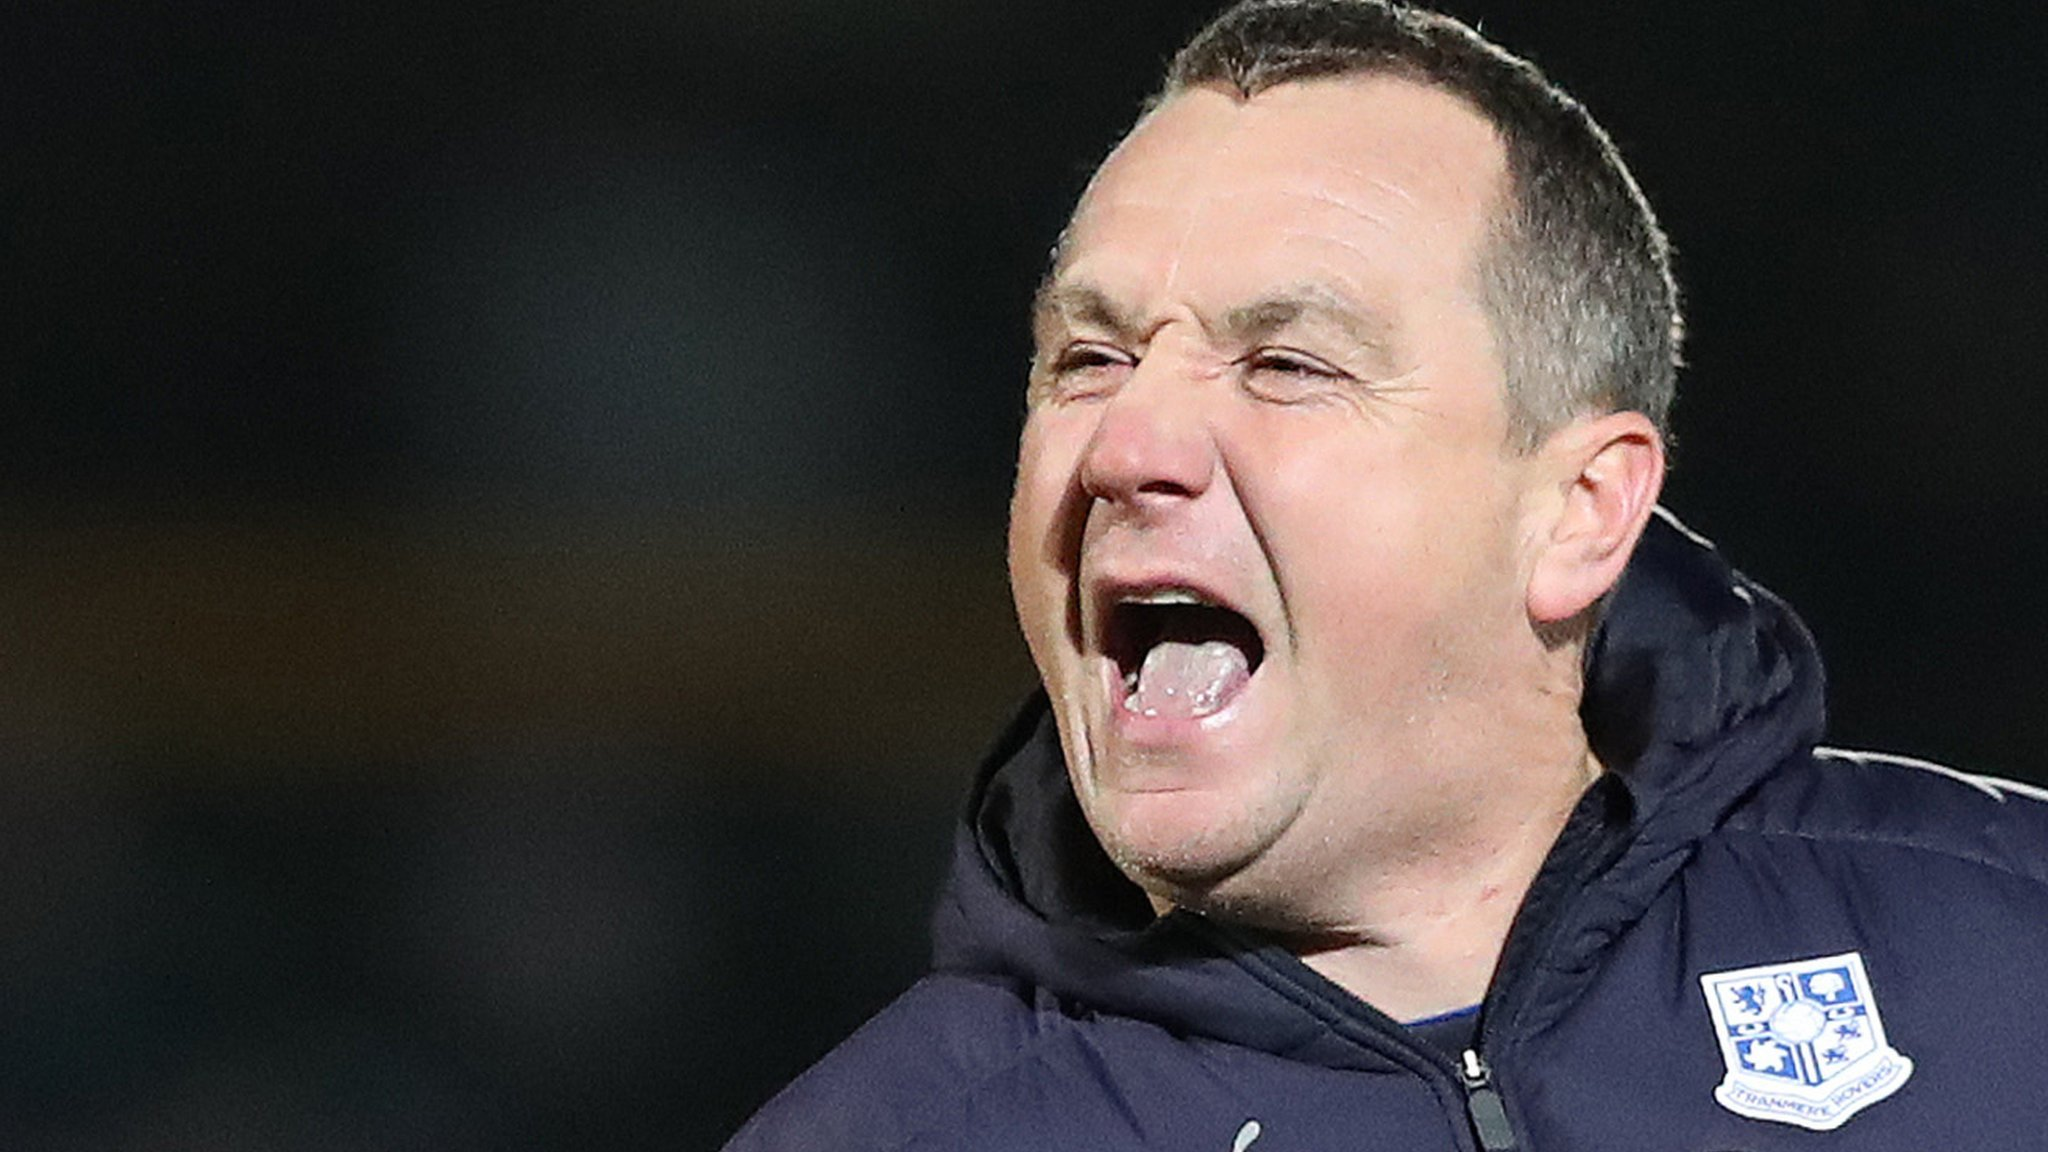 Tranmere Rovers: Spurs FA Cup tie a reward for fans after 'dark times' says boss